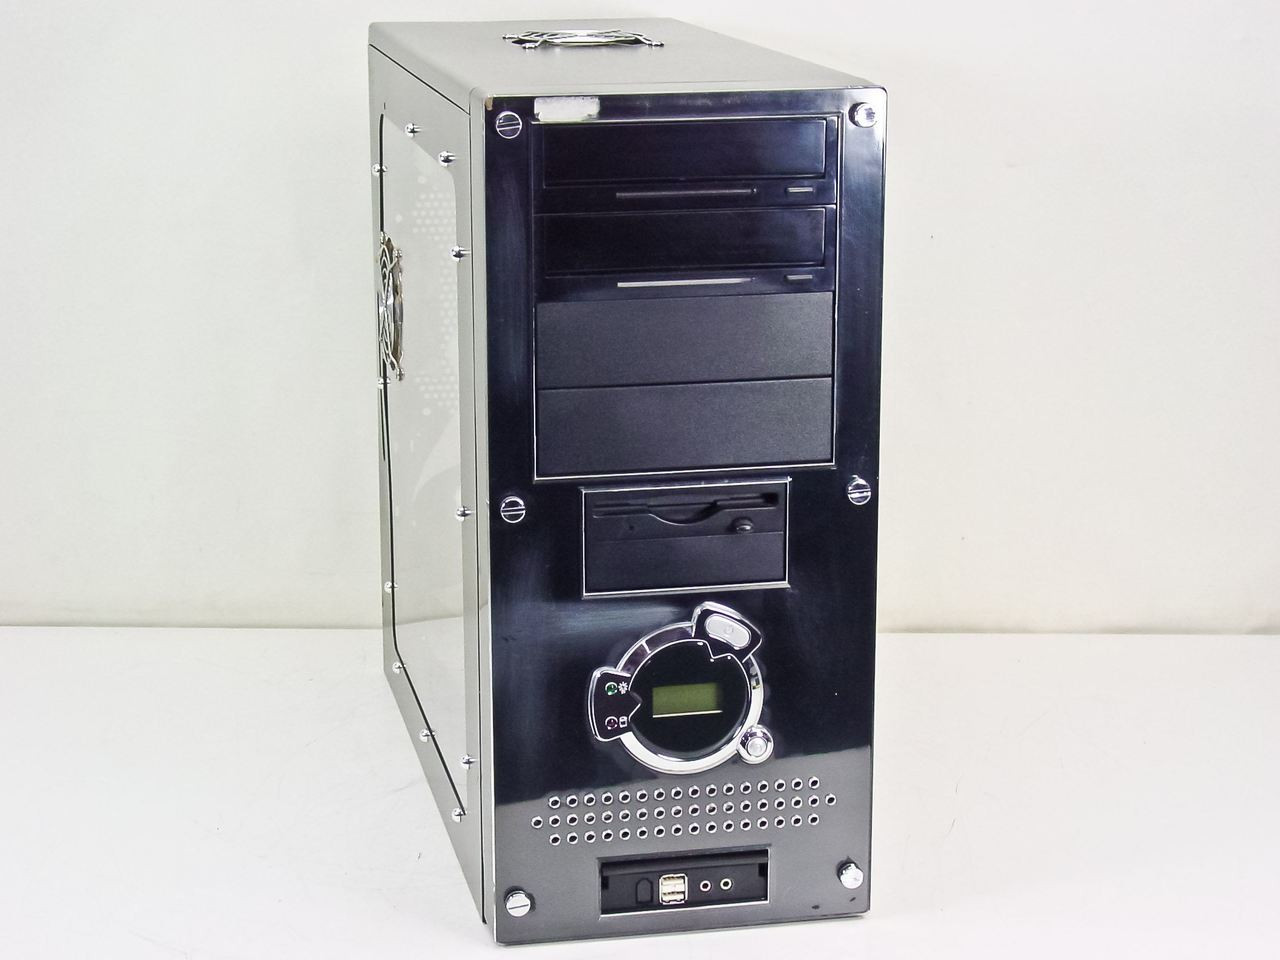 PX845PEV PRO WINDOWS VISTA DRIVER DOWNLOAD